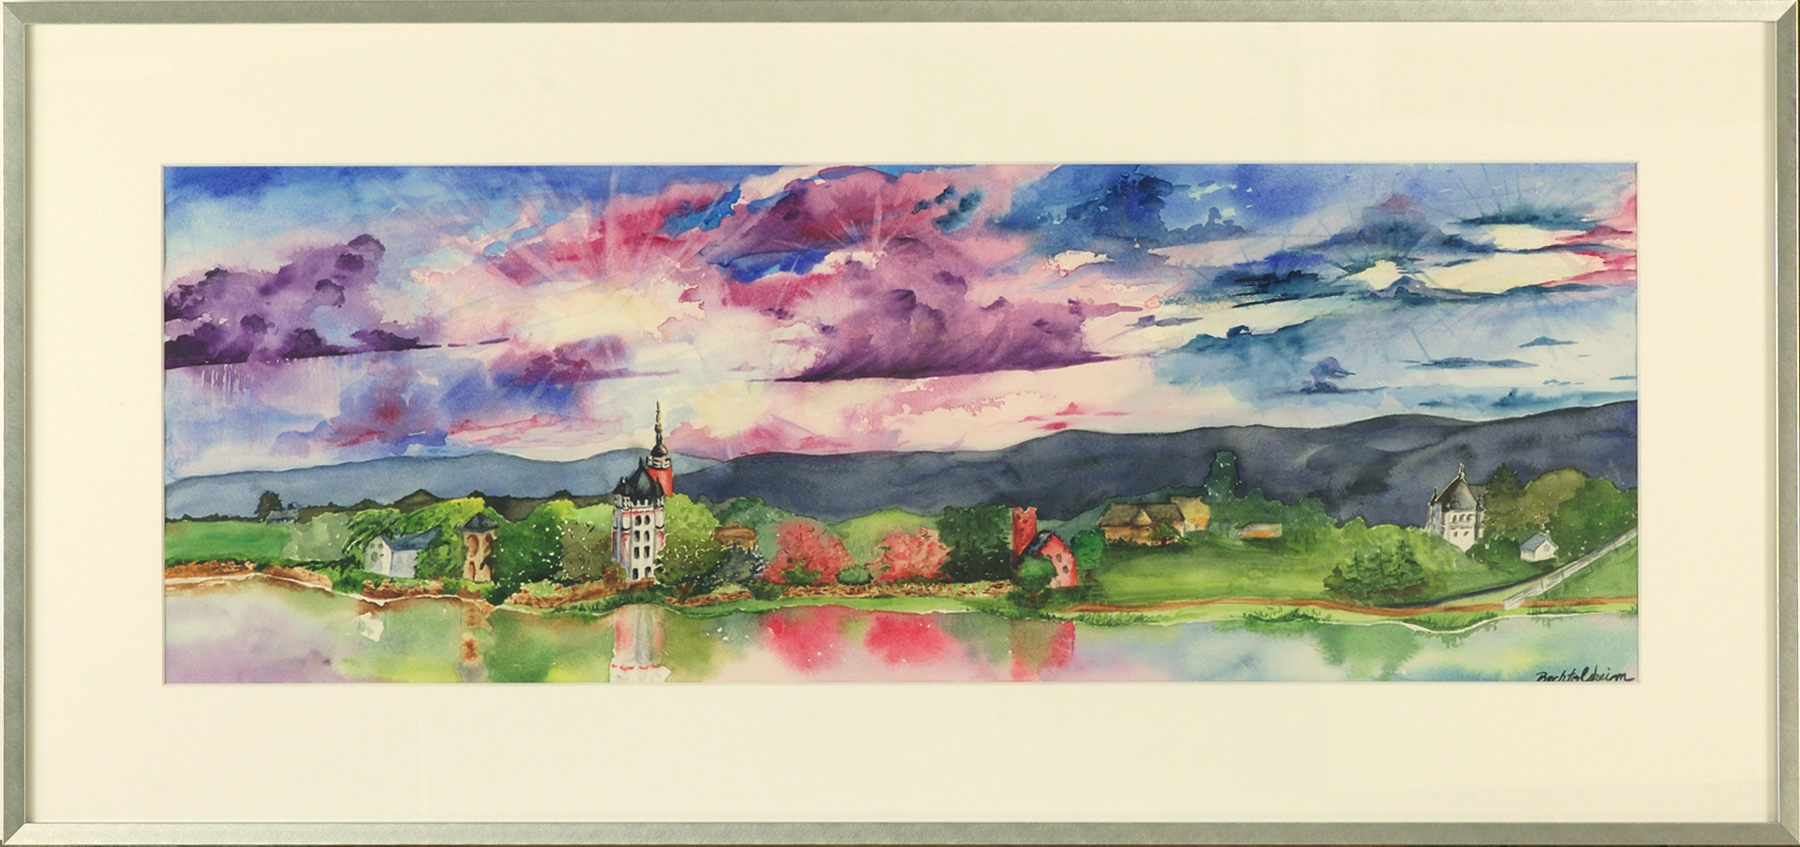 Tribute To My Mom, The Rhine River Valley-framed